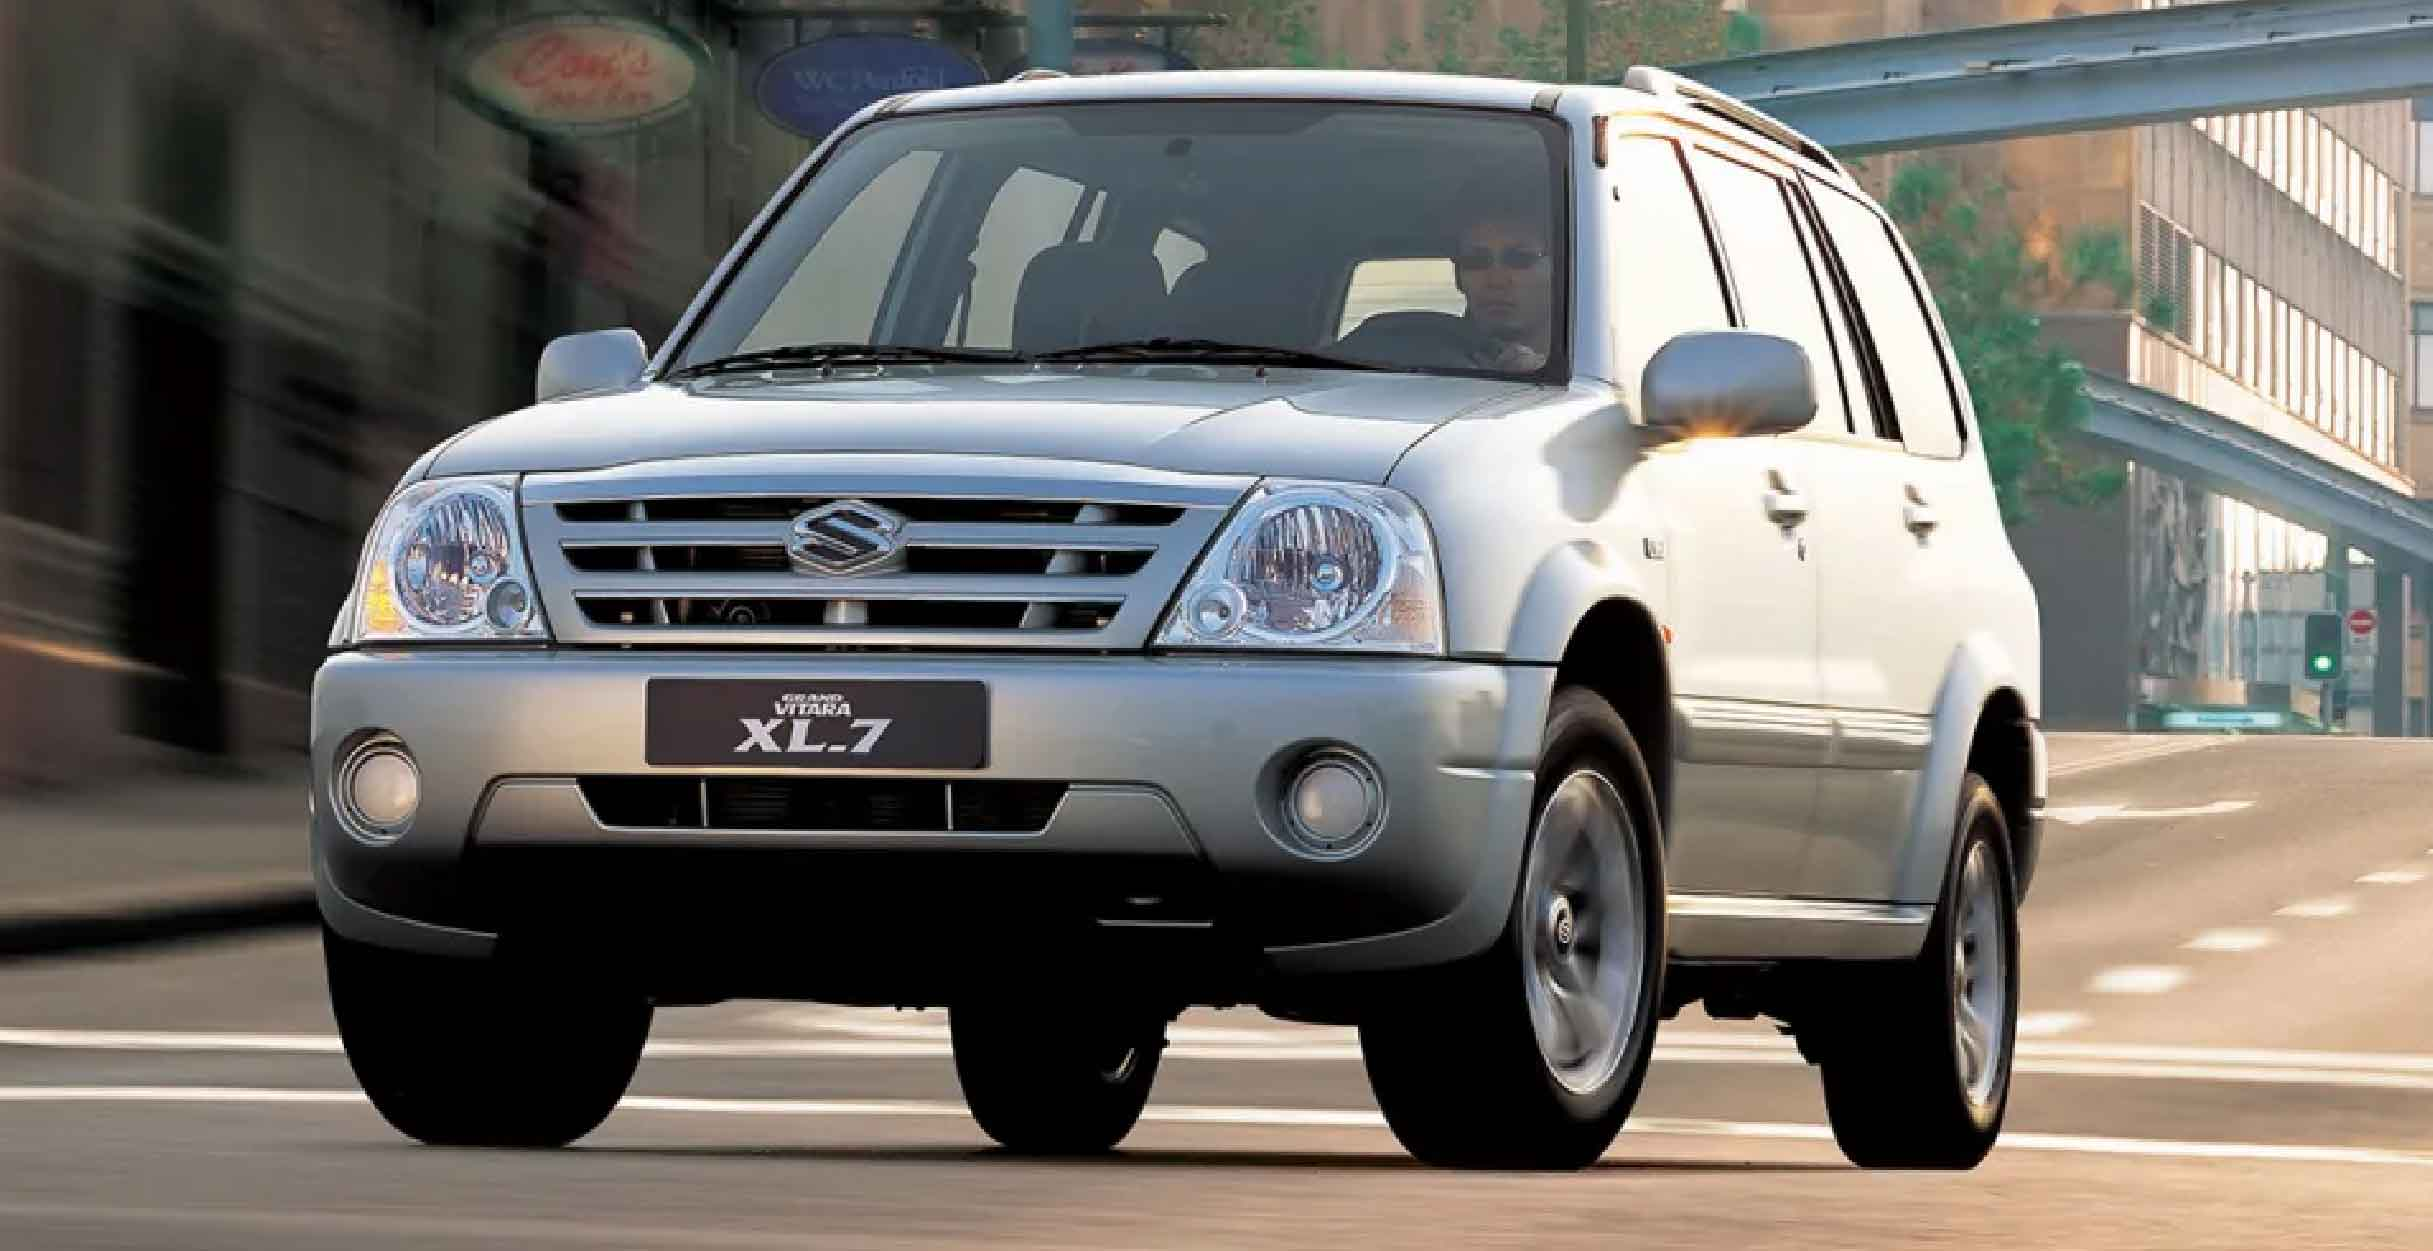 suzuki grand vitara xl 7 when maruti tried a v6 engine suzuki grand vitara xl 7 when maruti